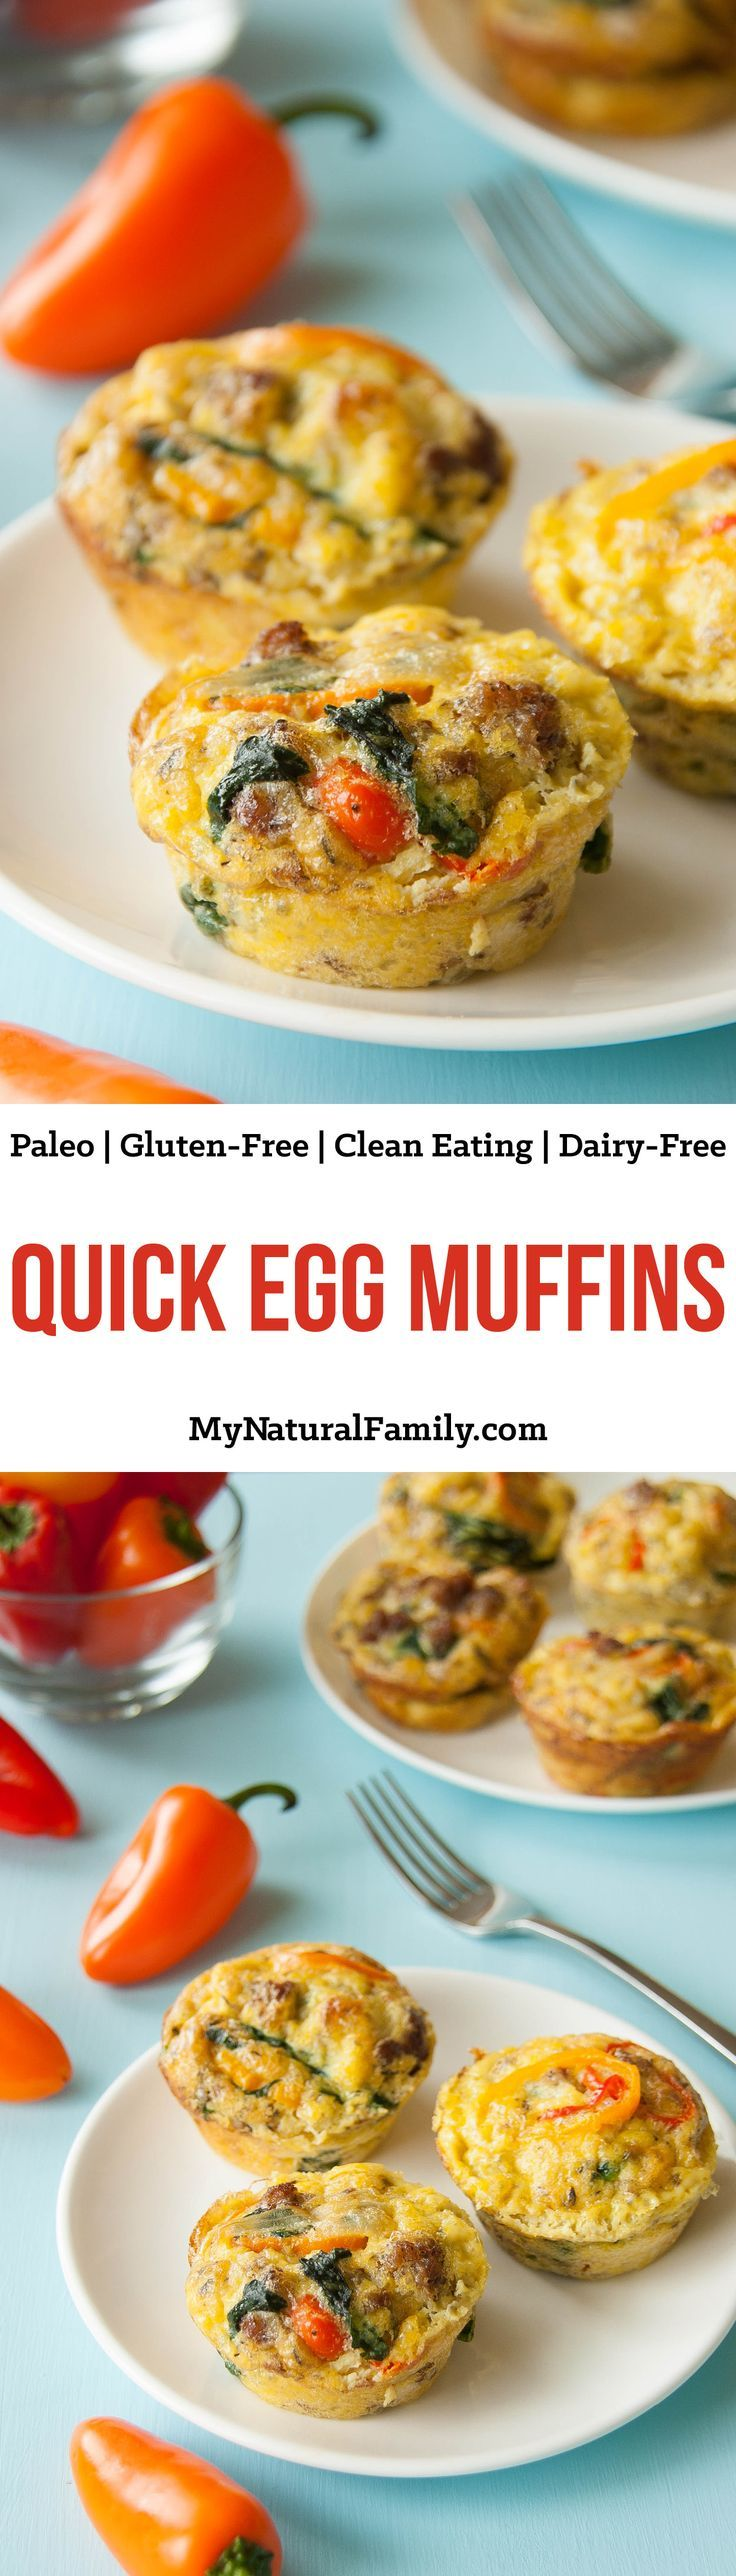 Quick Egg Muffin Recipe {Paleo, Gluten Free, Clean Eating, Dairy Free}